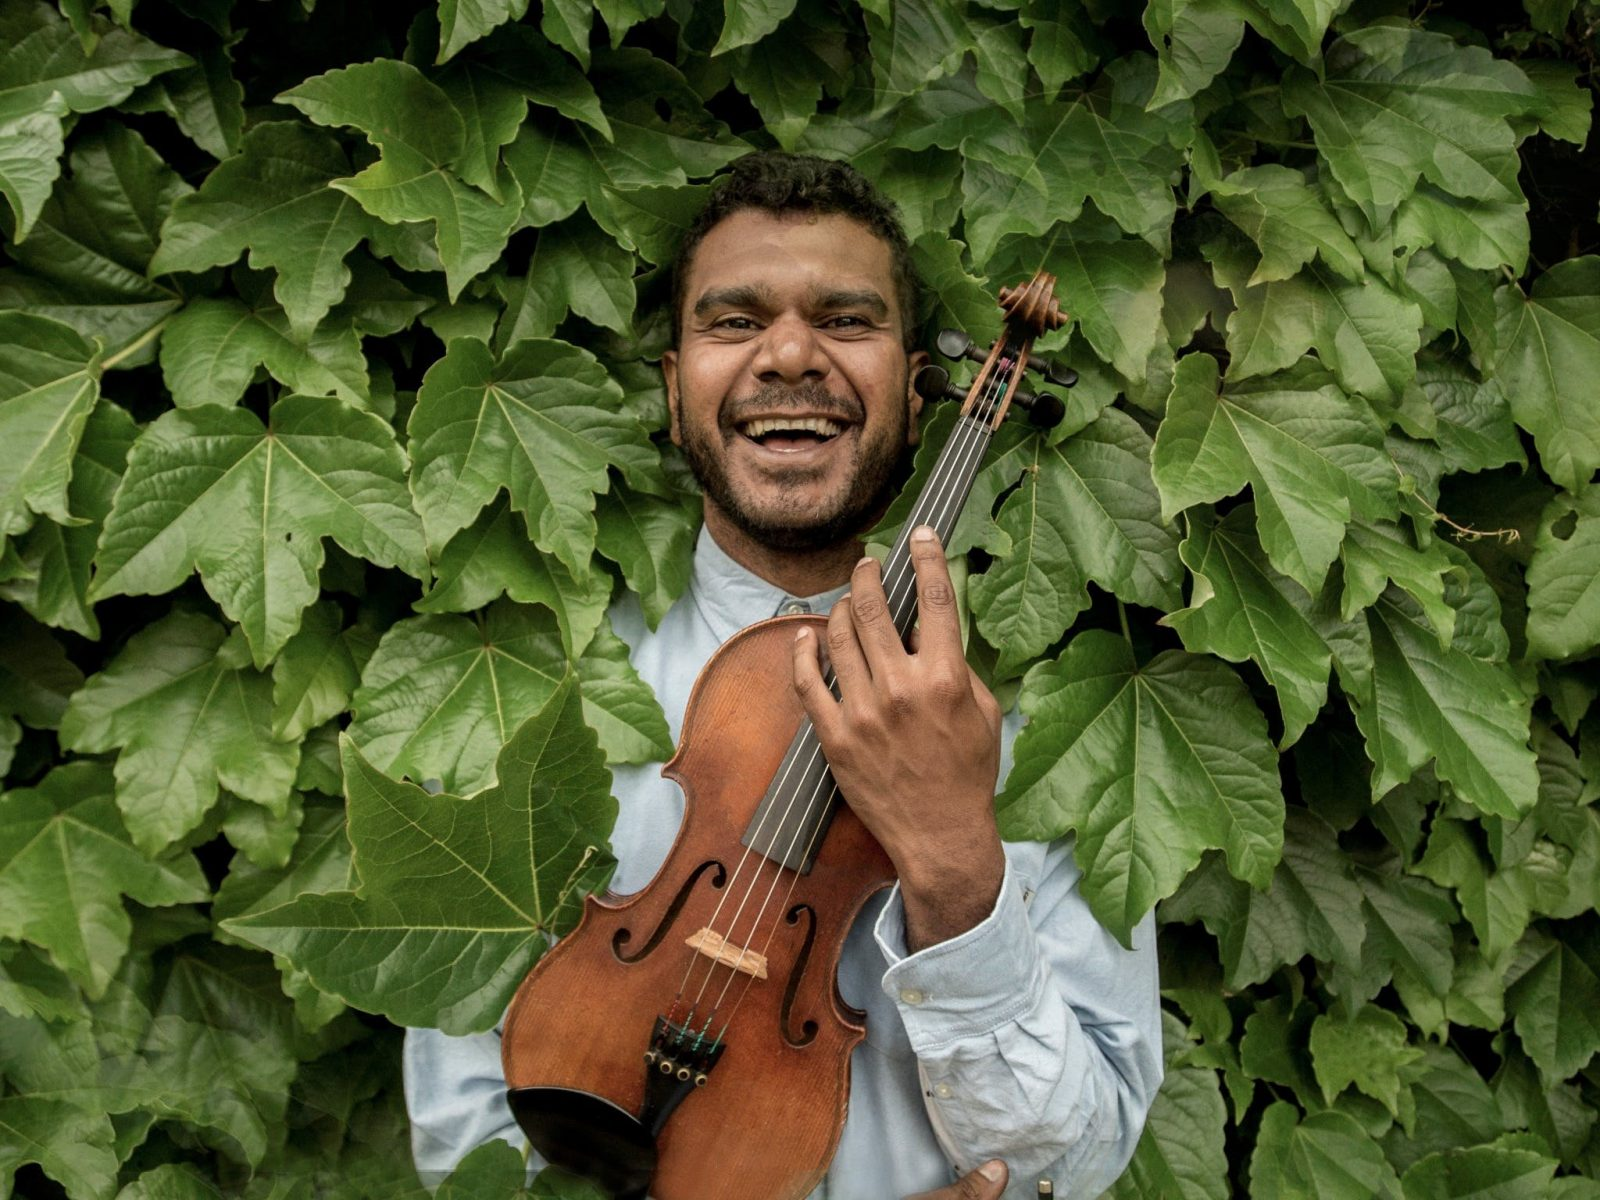 Man stands in leafy bushes smiling and holding a violin